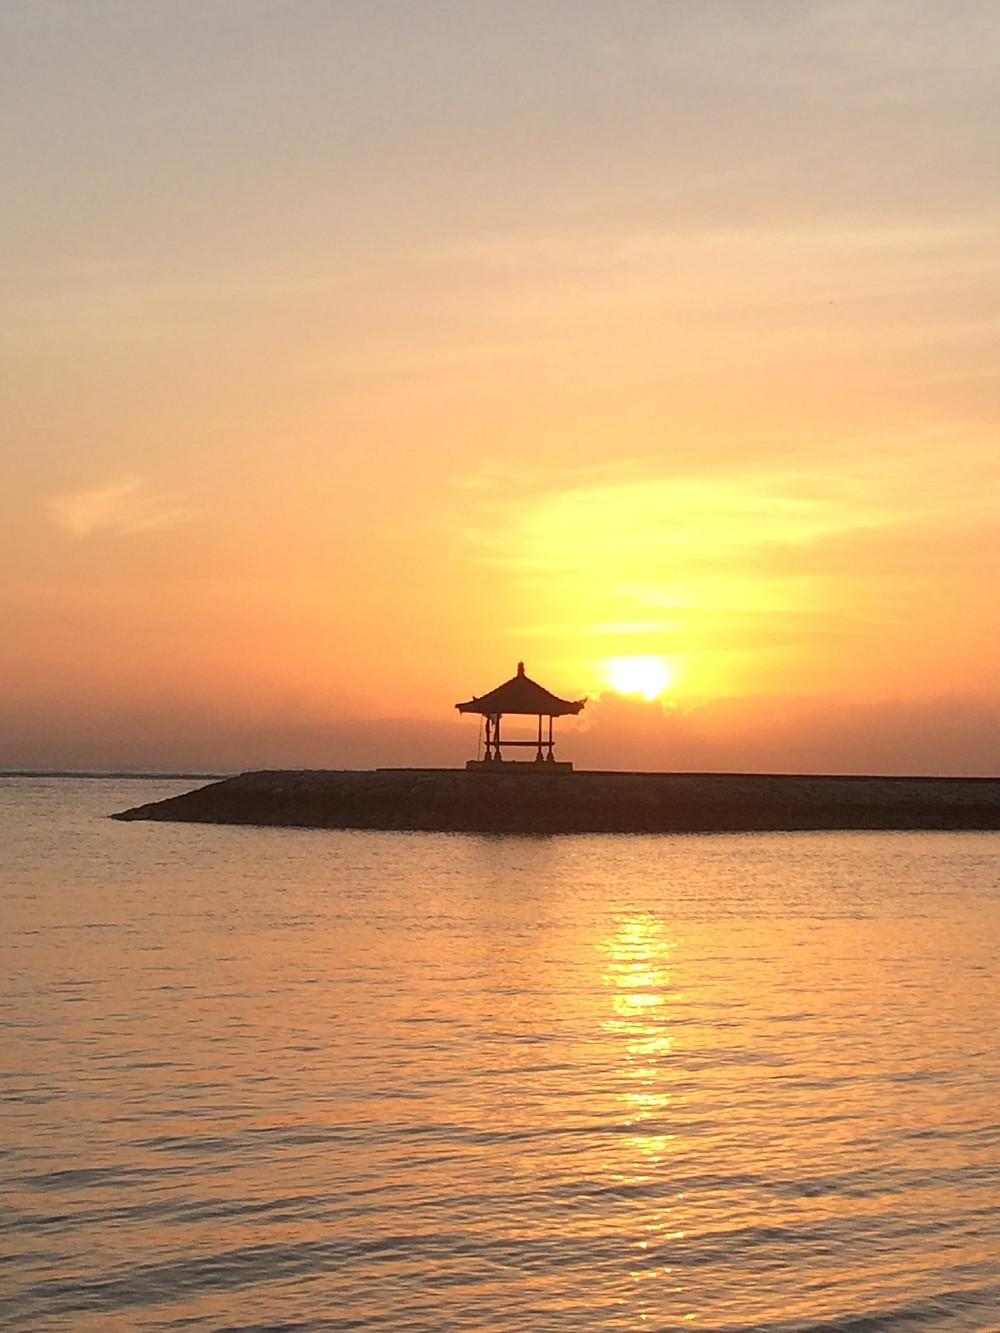 Image shows a Japanese constructed house in the middle of the sea in sunset